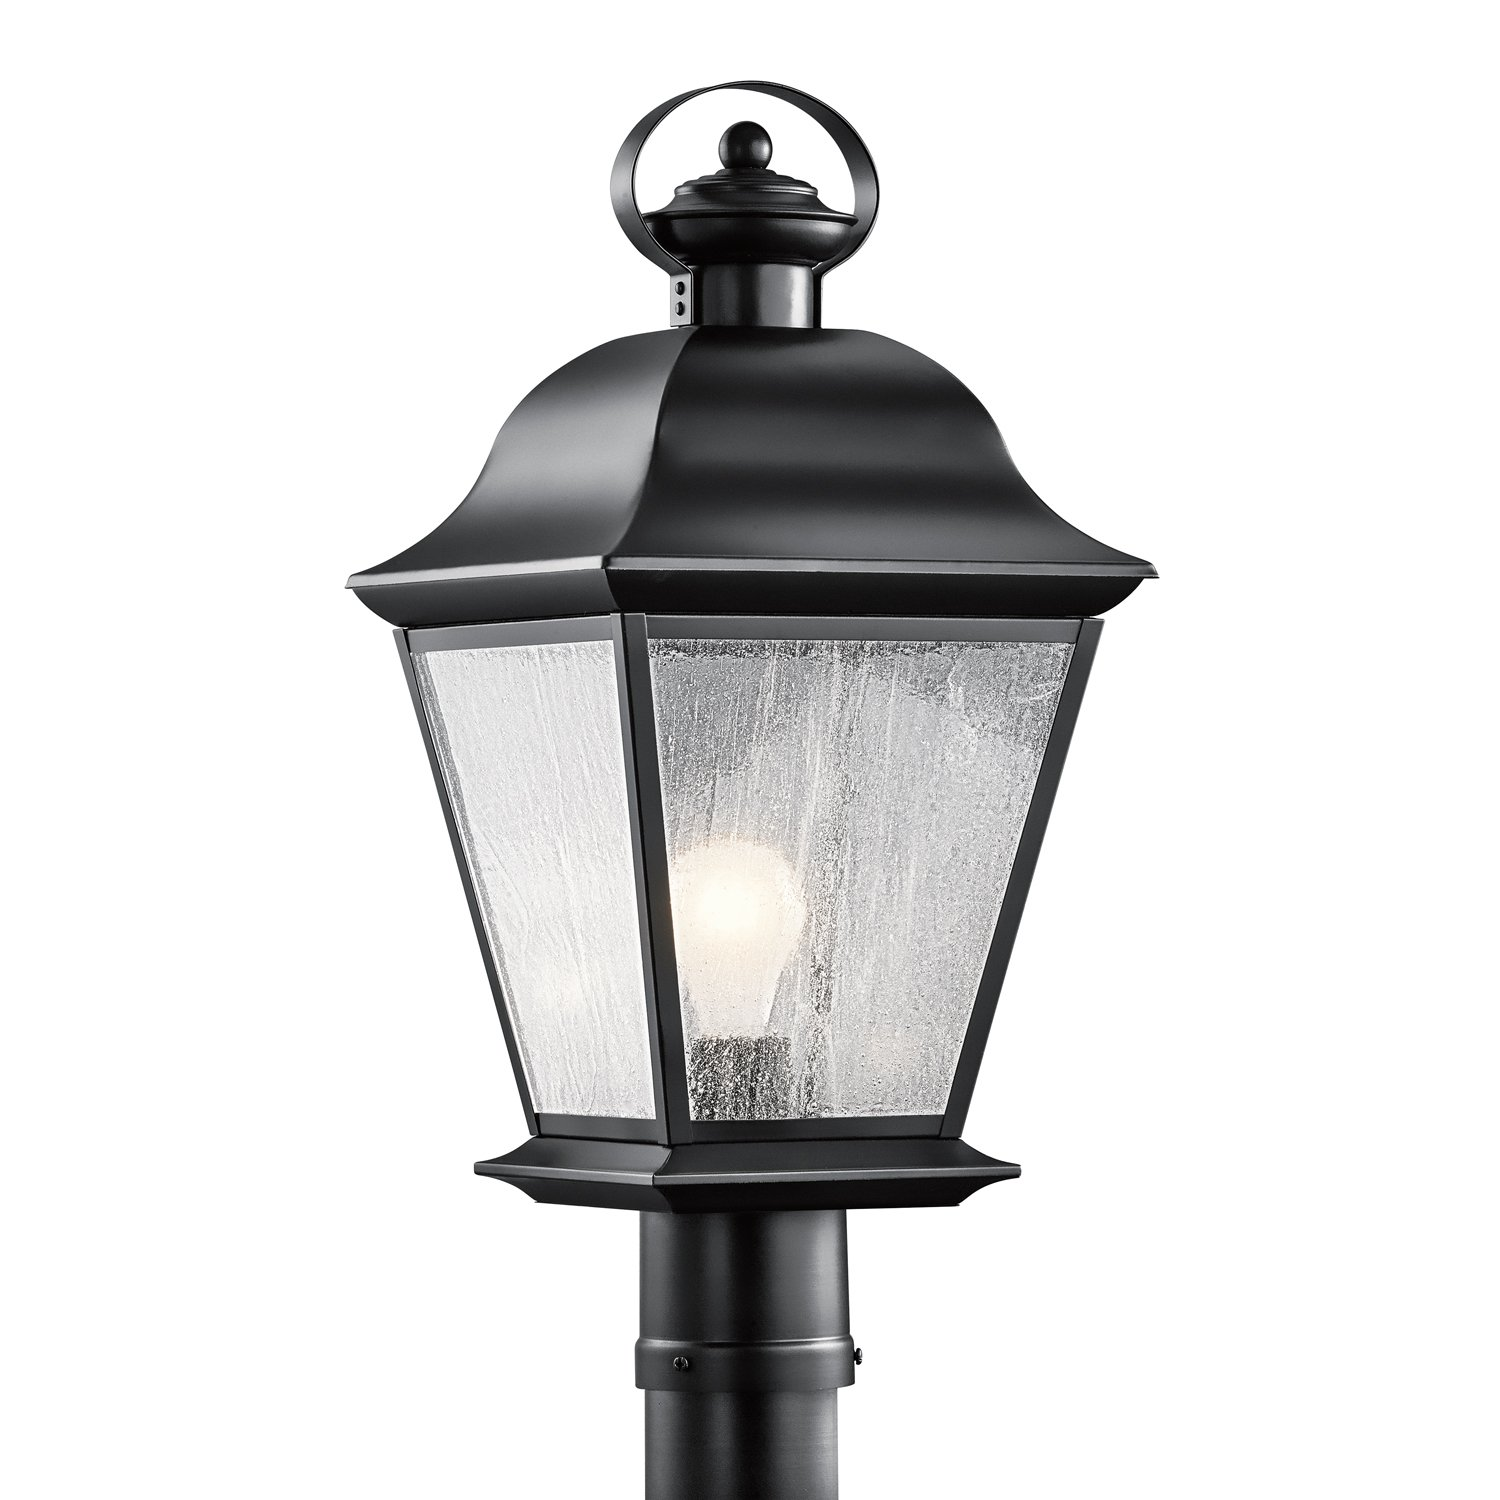 Kichler Lighting 9909BK Mount Vernon 1-Light Outdoor Post Mount, Black Finish with Clear Seedy Glass